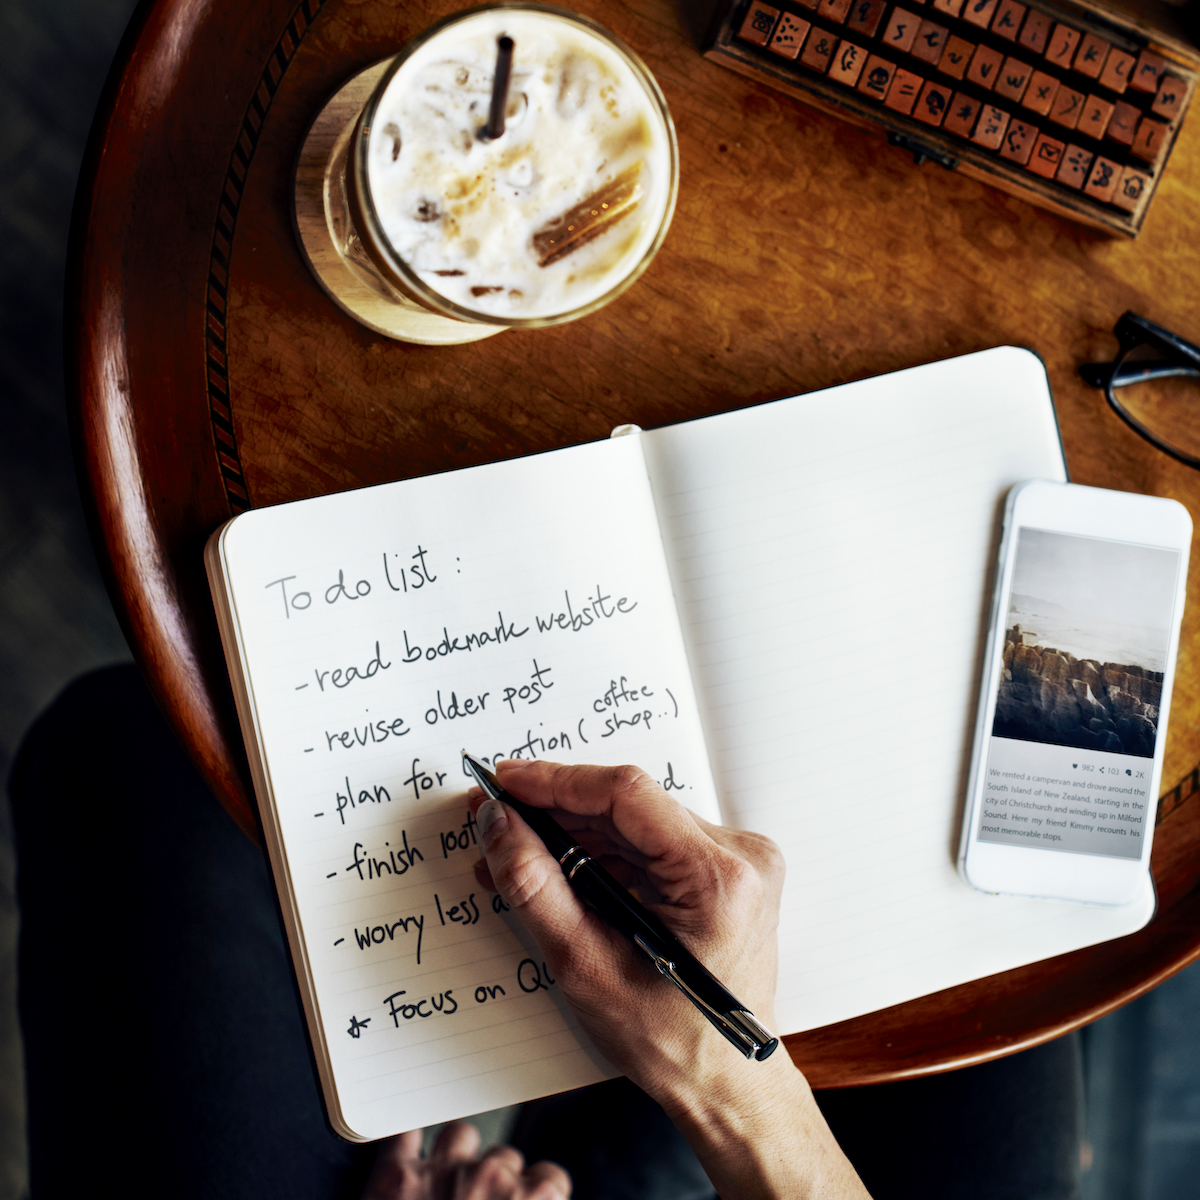 Close up view of a hand writing a to do list in a bullet journal at a cafe table.